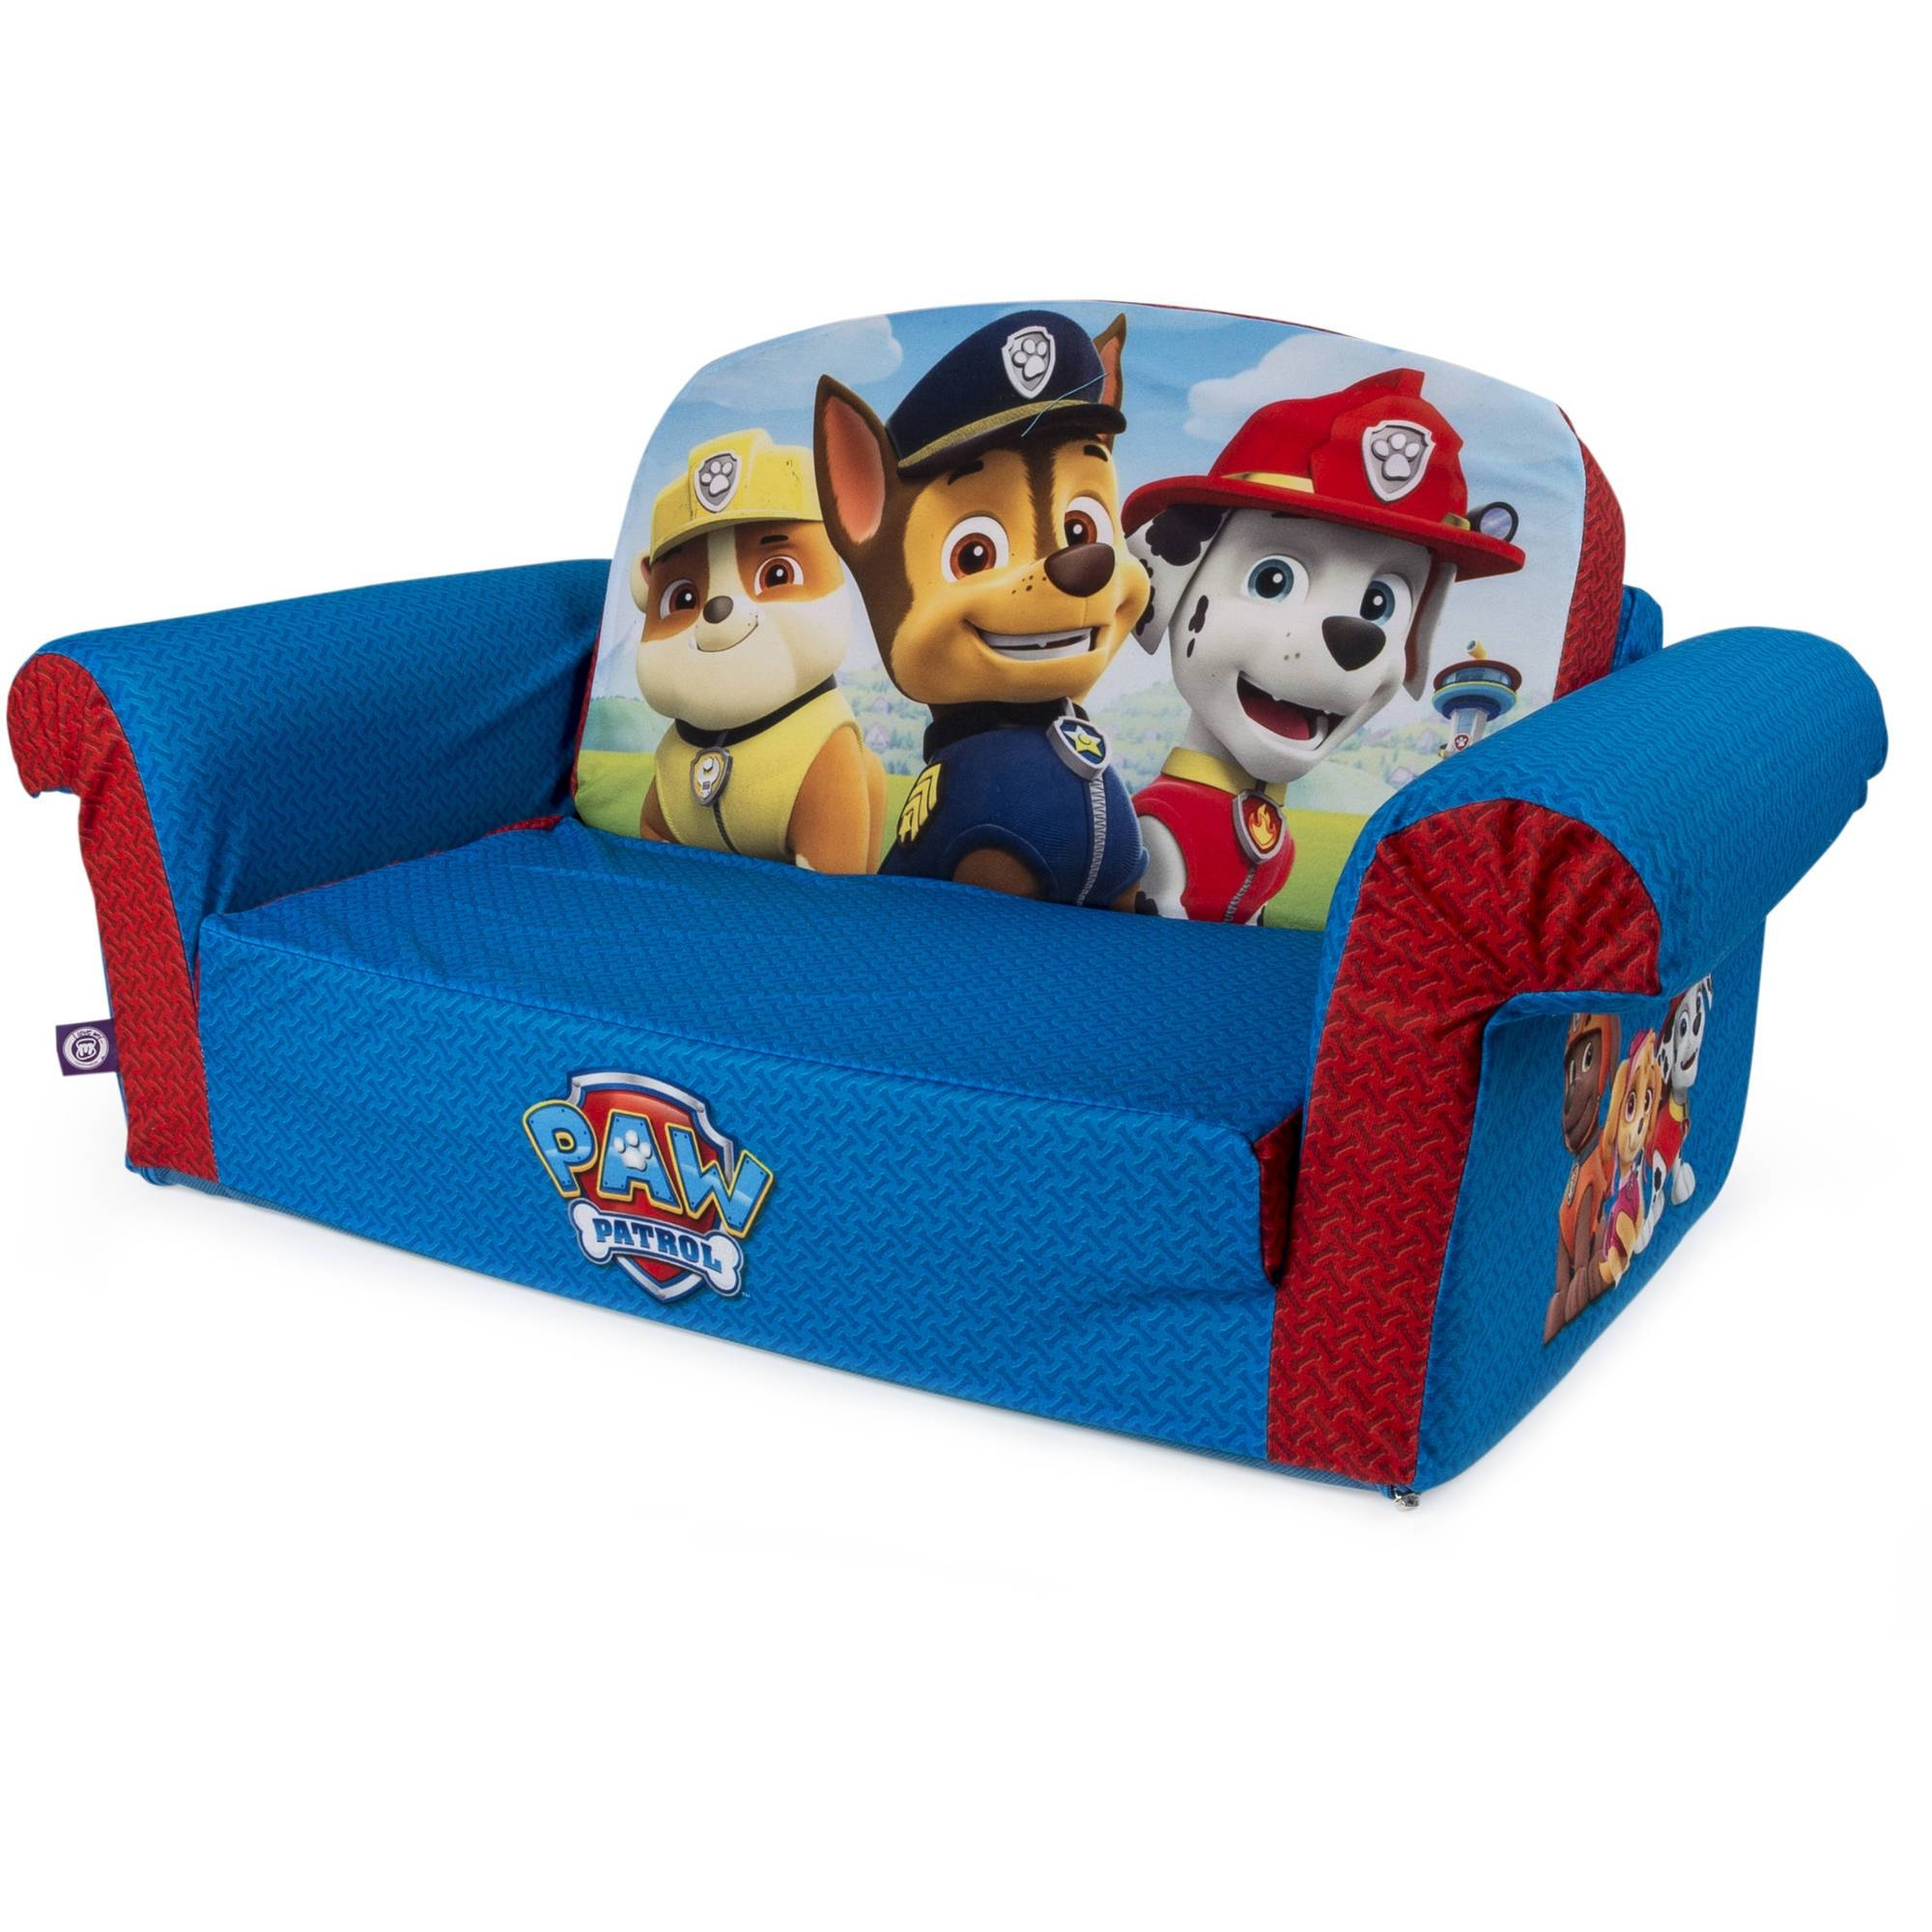 Marshmallow Furniture, Children's 2 In 1 Flip Open Foam Sofa with Childrens Sofa Chairs (Image 10 of 15)